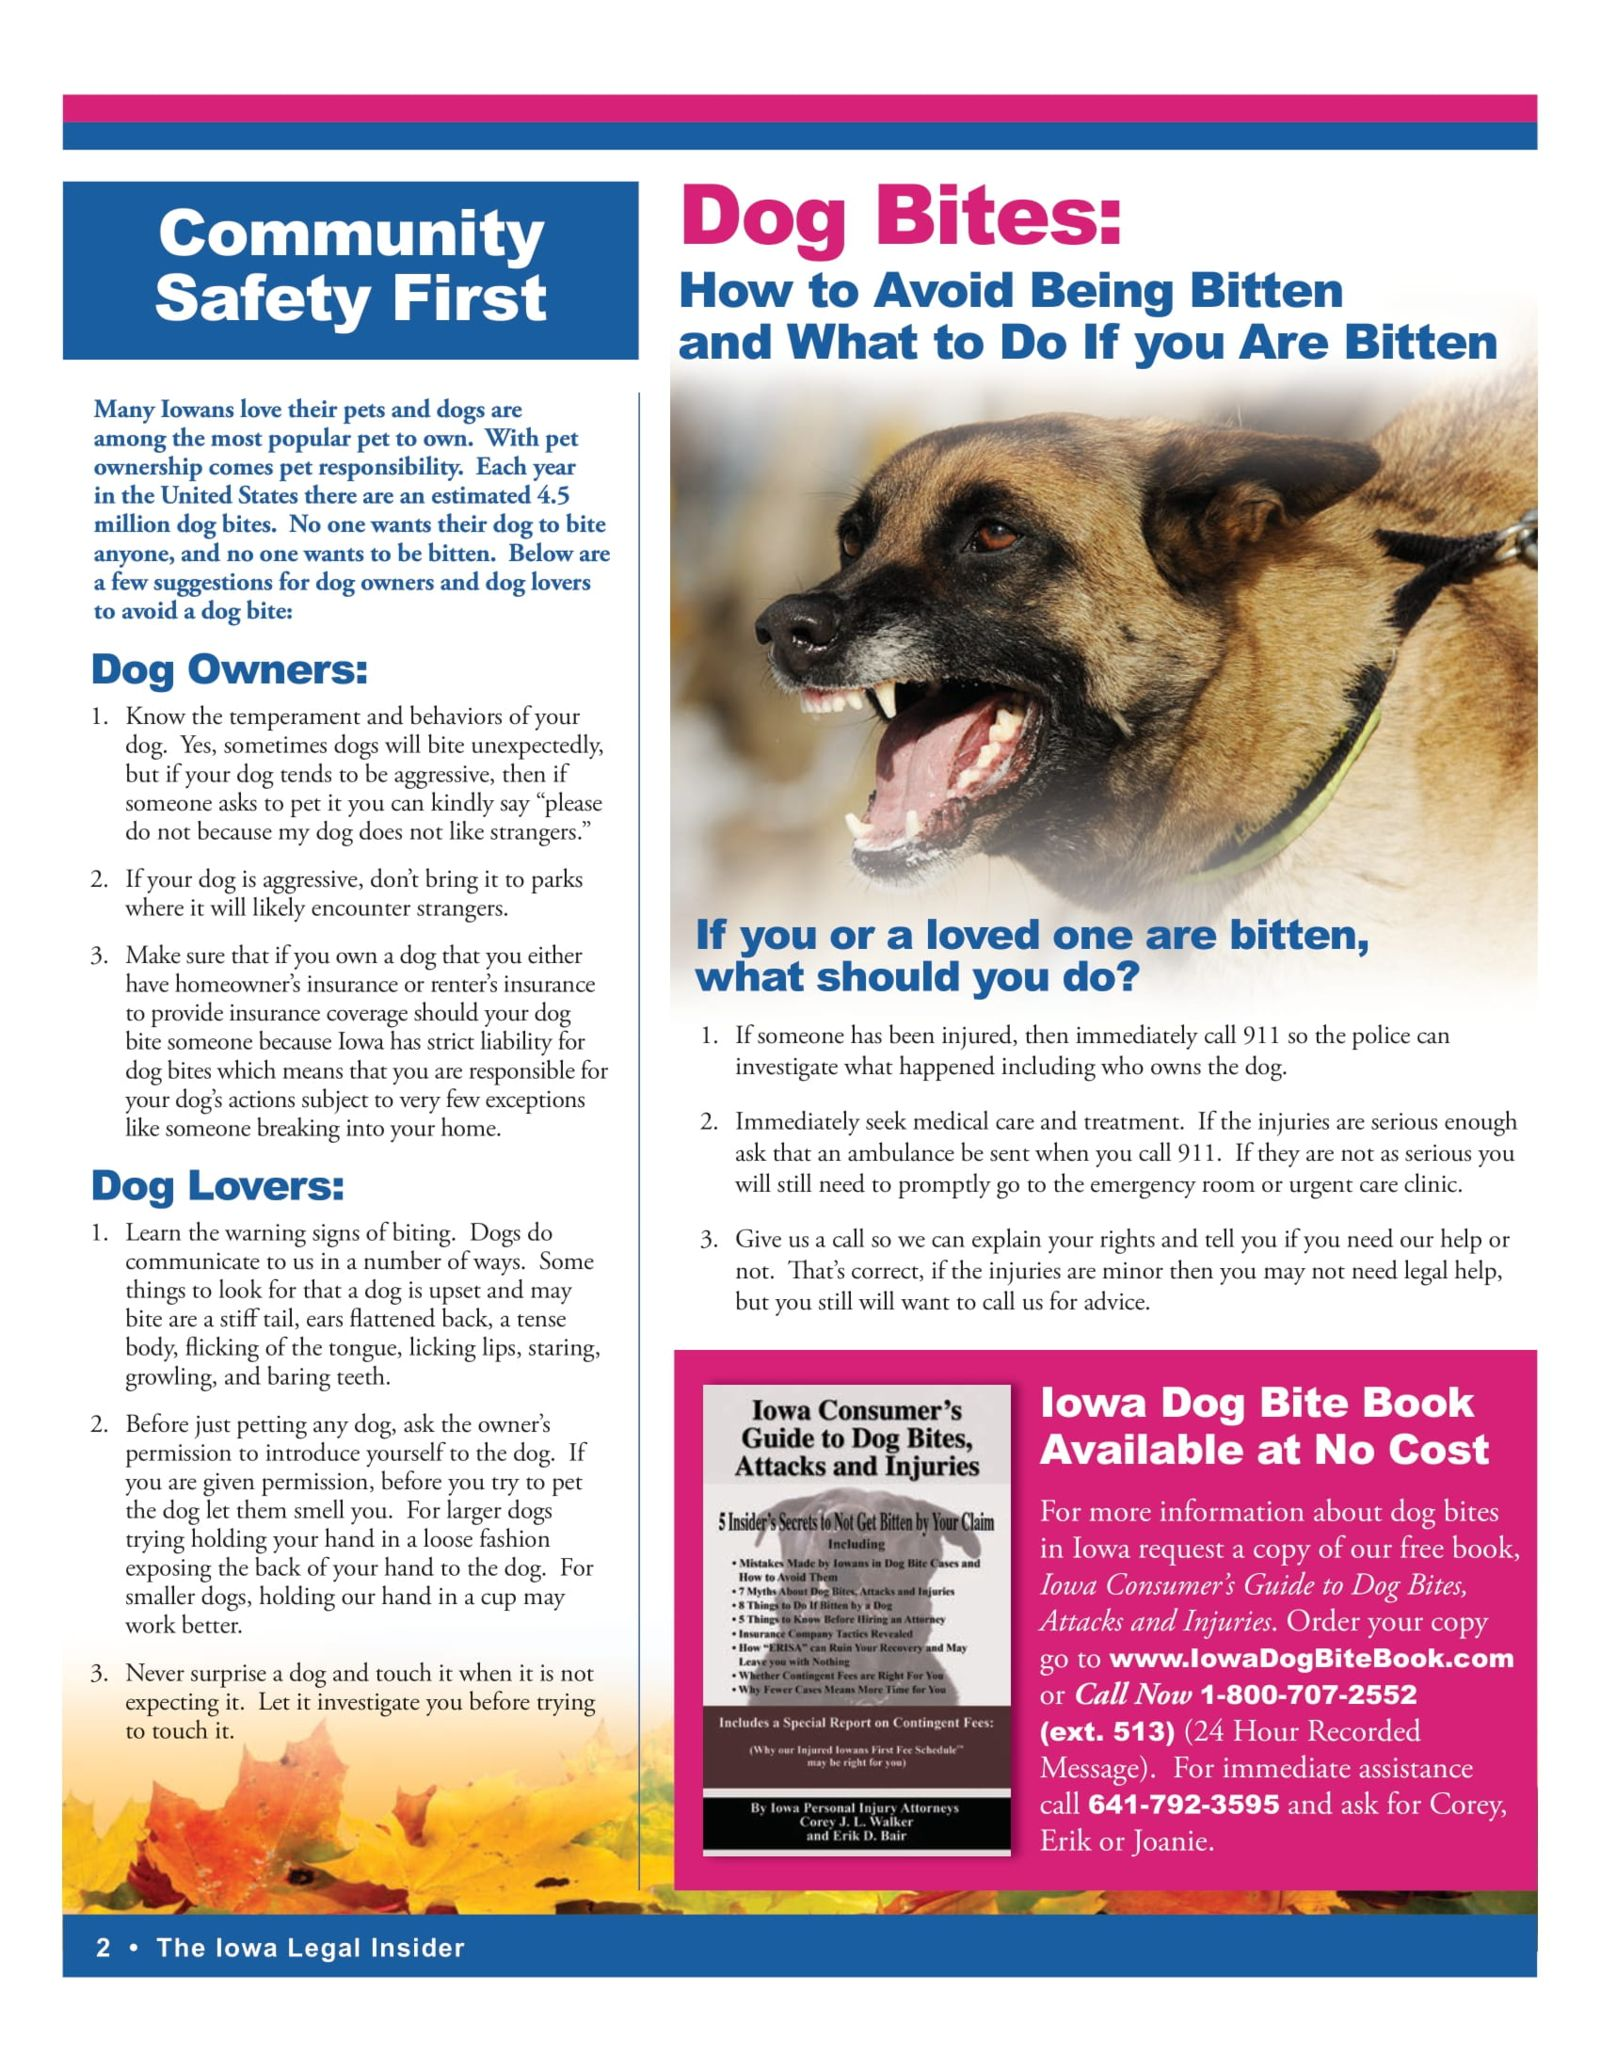 Dog Bites and how to avoid being bitten and what to do if you are.